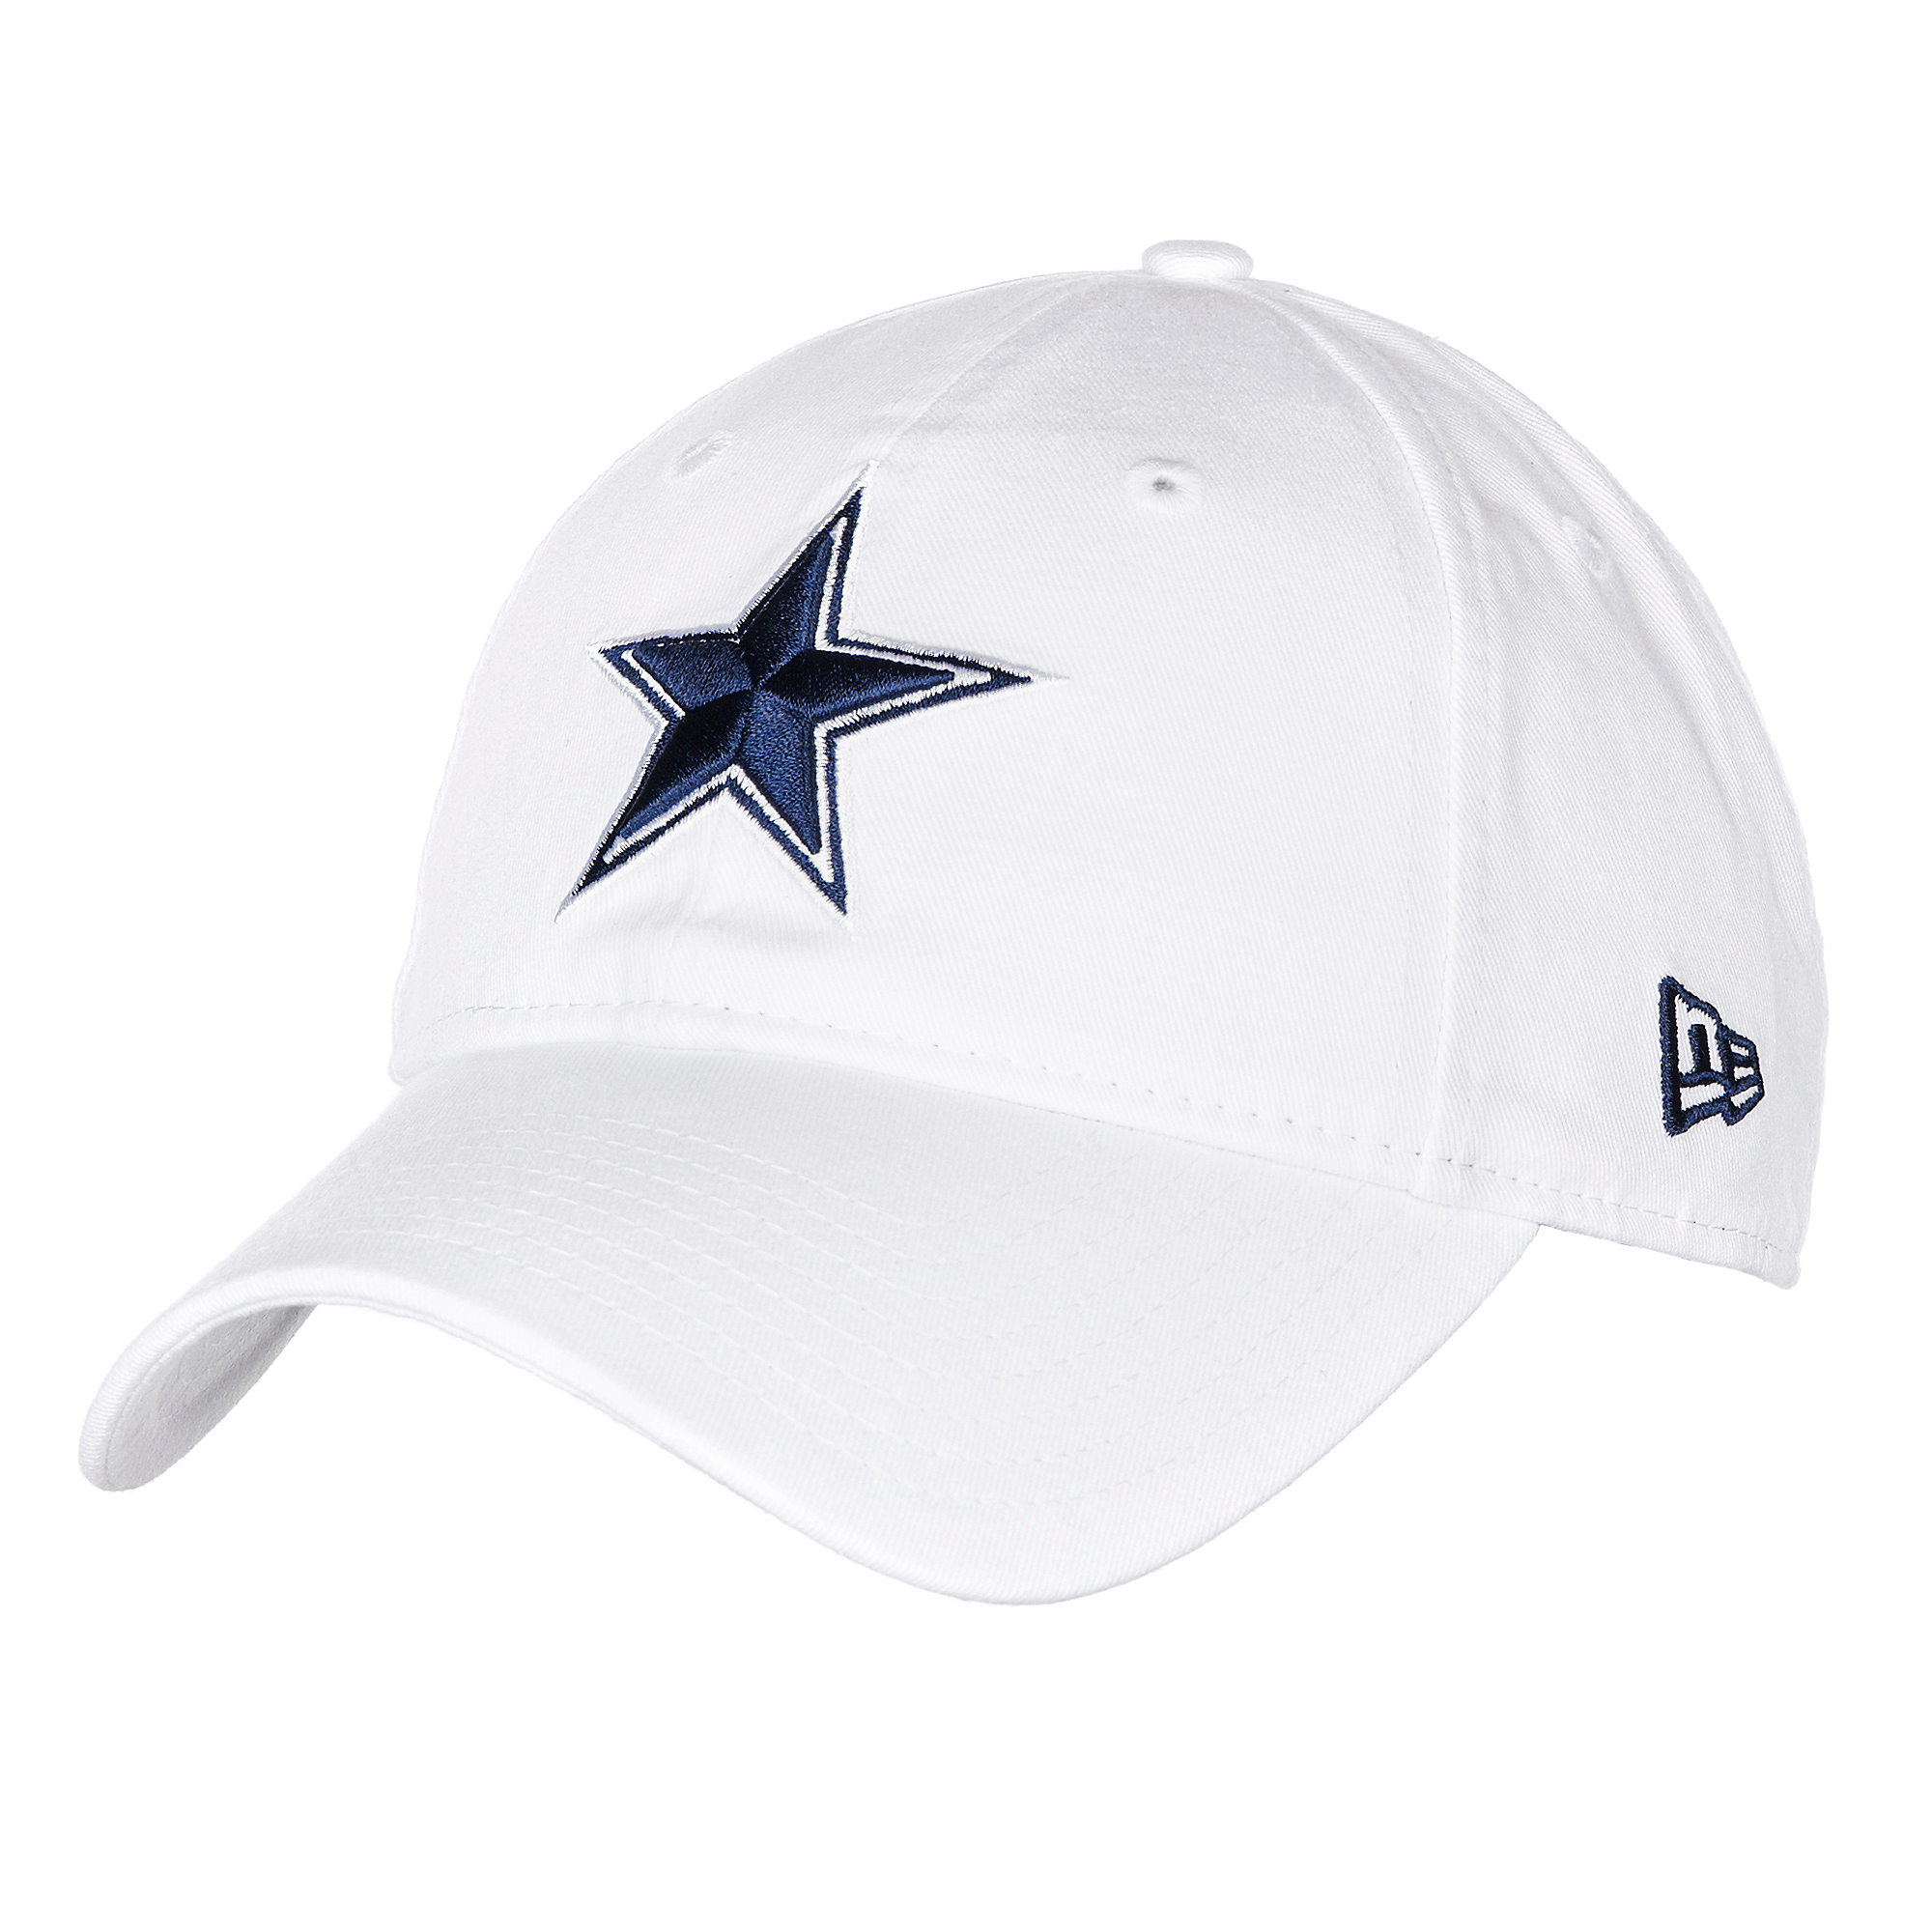 e7839c282d2 ... cheap dallas cowboys new era white dak prescott leather 9twenty cap  0c3f2 8c0b4